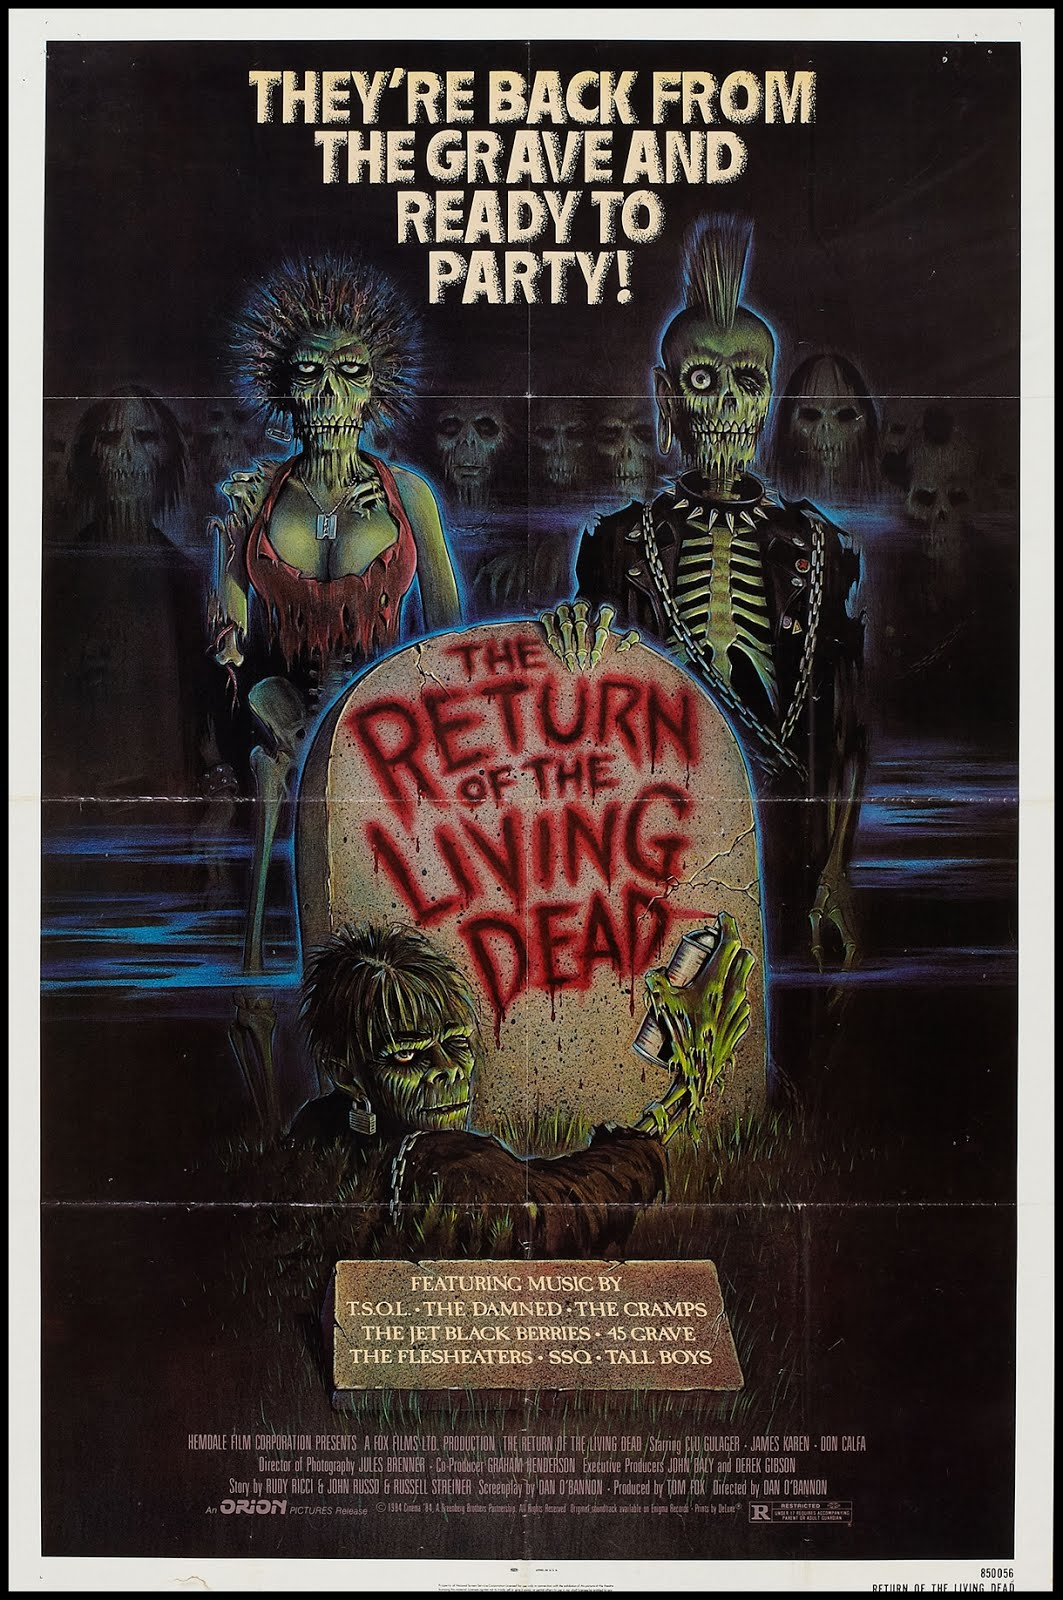 http://3.bp.blogspot.com/-OA-eN0lxybg/UIXvsxbcIrI/AAAAAAAAIBg/BavLy_OGxkw/s1600/return.of.the.living.dead-1985.jpg